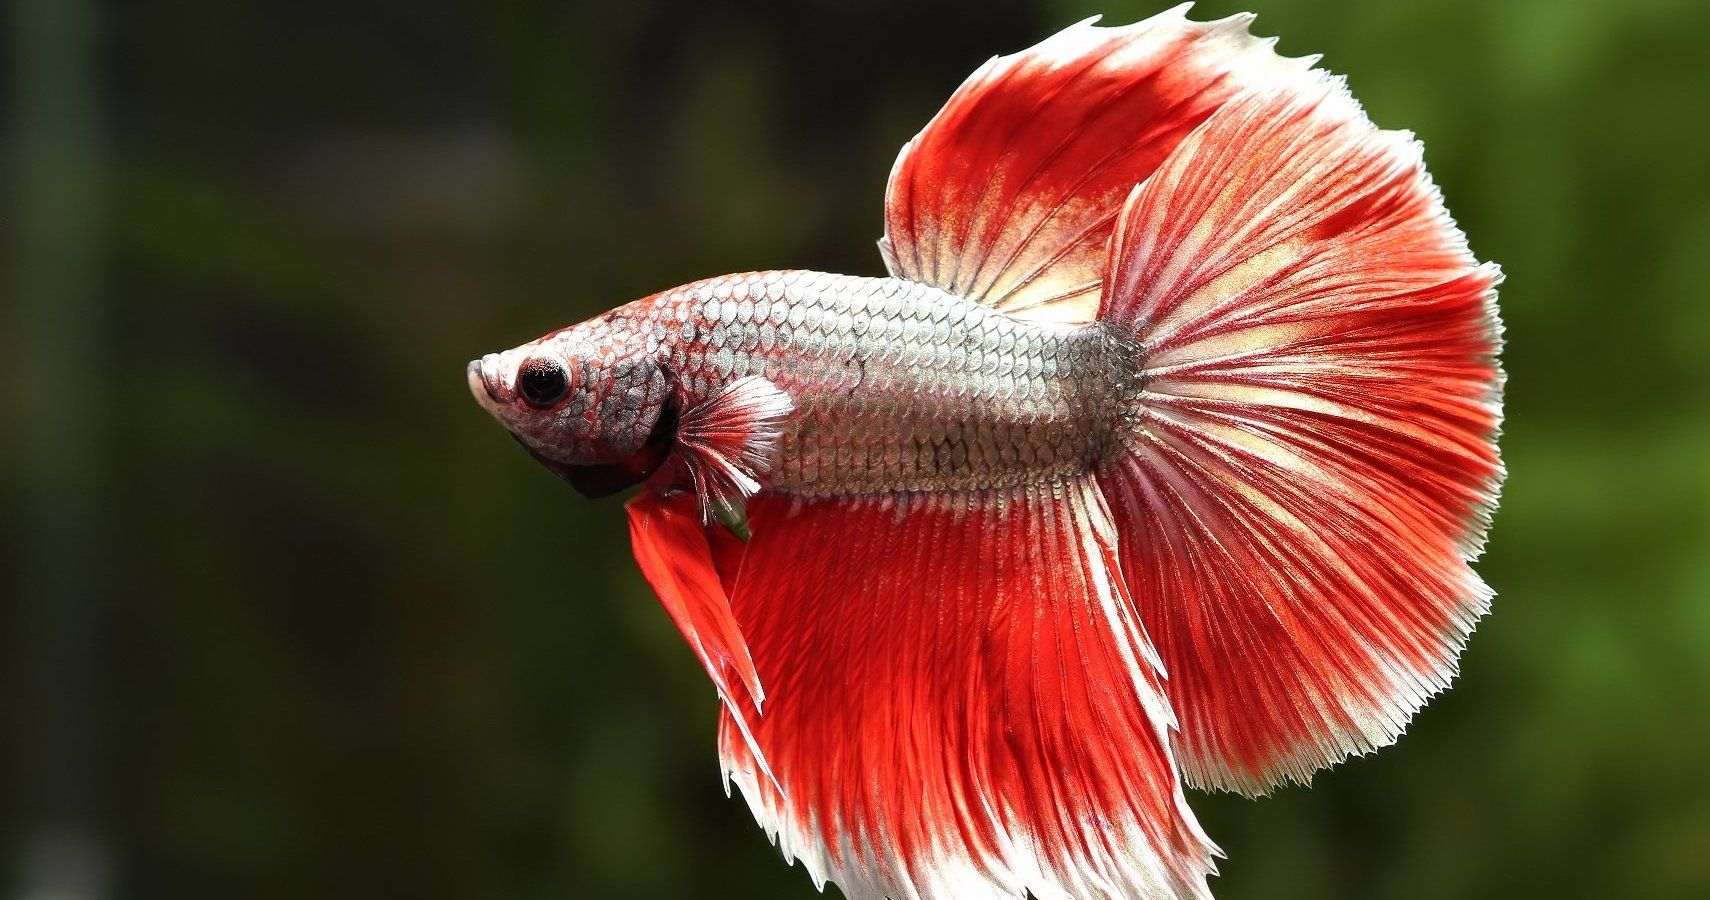 Busted Betta Fish Myths | TheThings